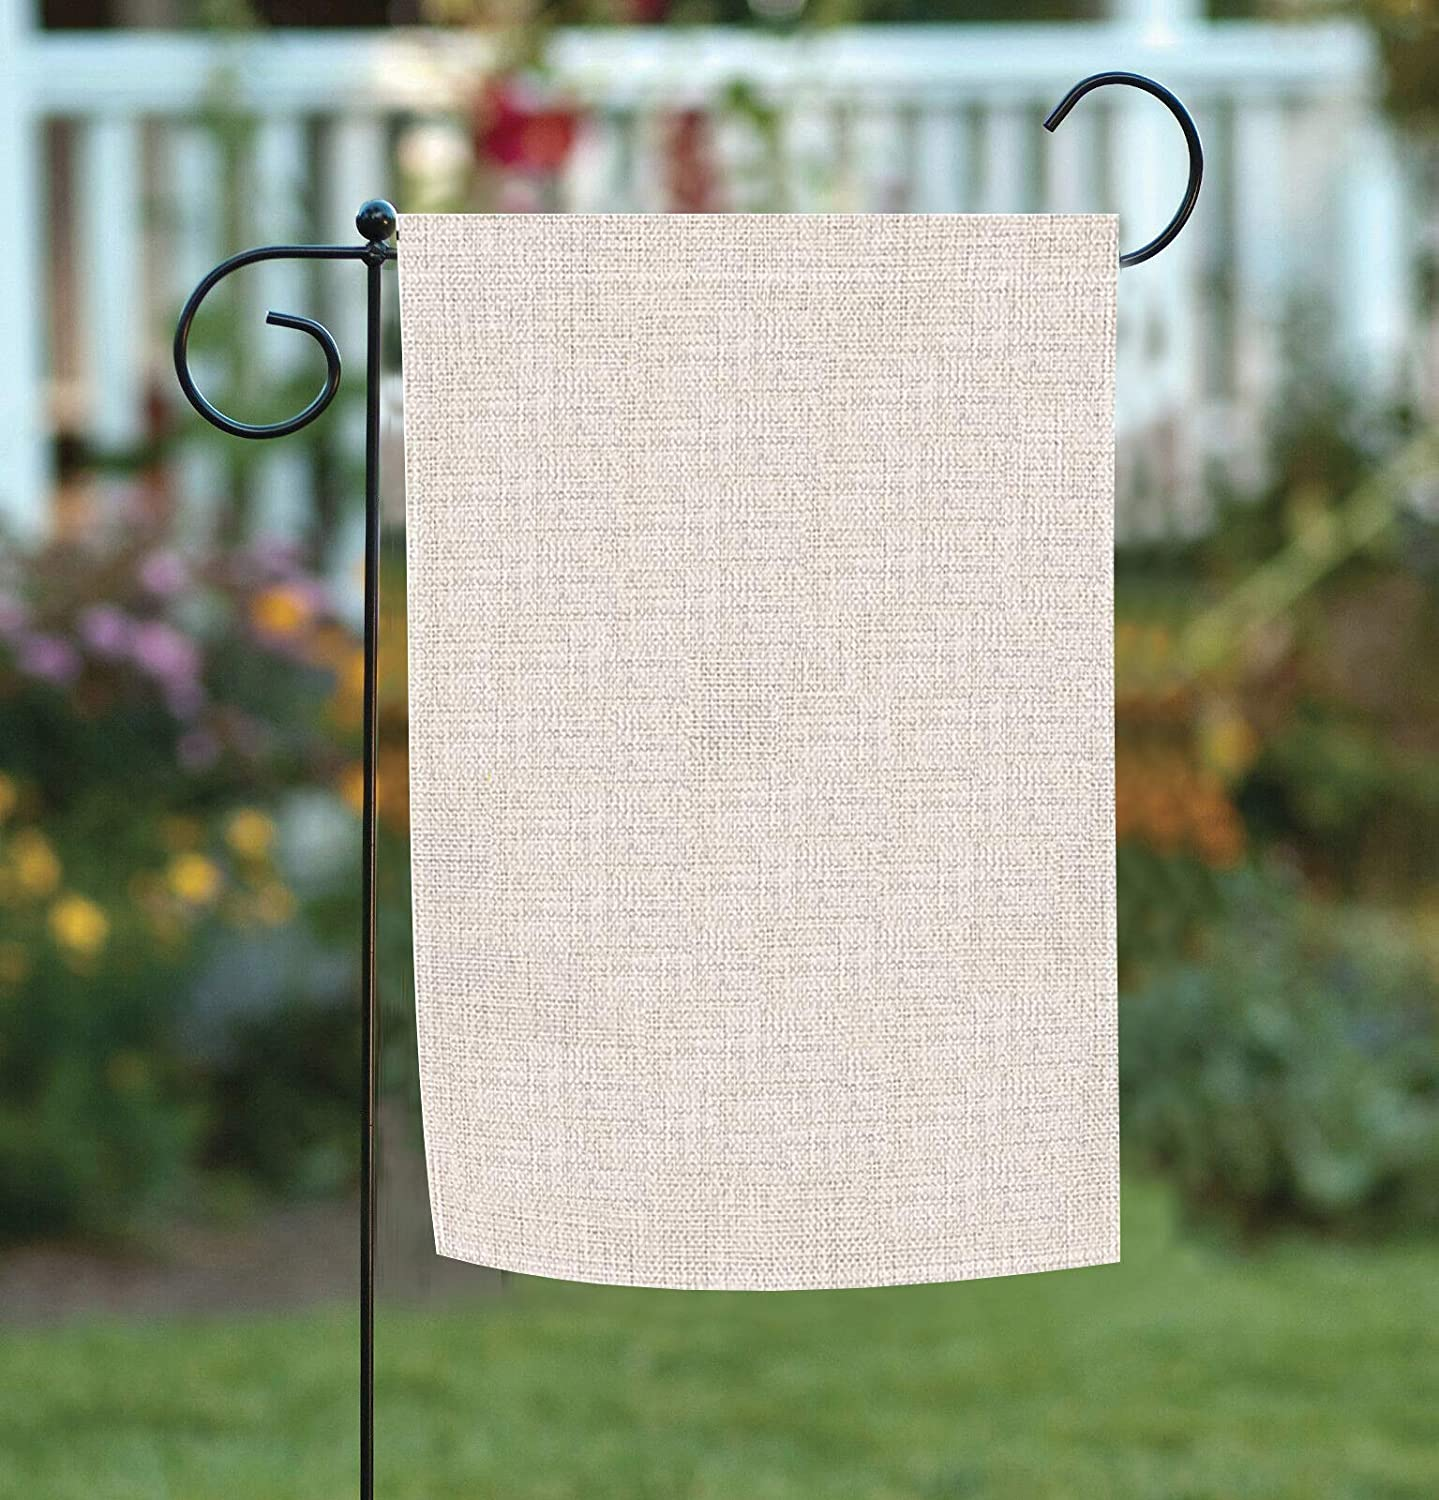 Double Sided Burlap Garden Flag Premium Material American Football Holiday Outdoor Decorative Small Flags For Home House Garden Yard Lawn Patio 12 5 X 18 Inch Ag022 Garden Outdoor